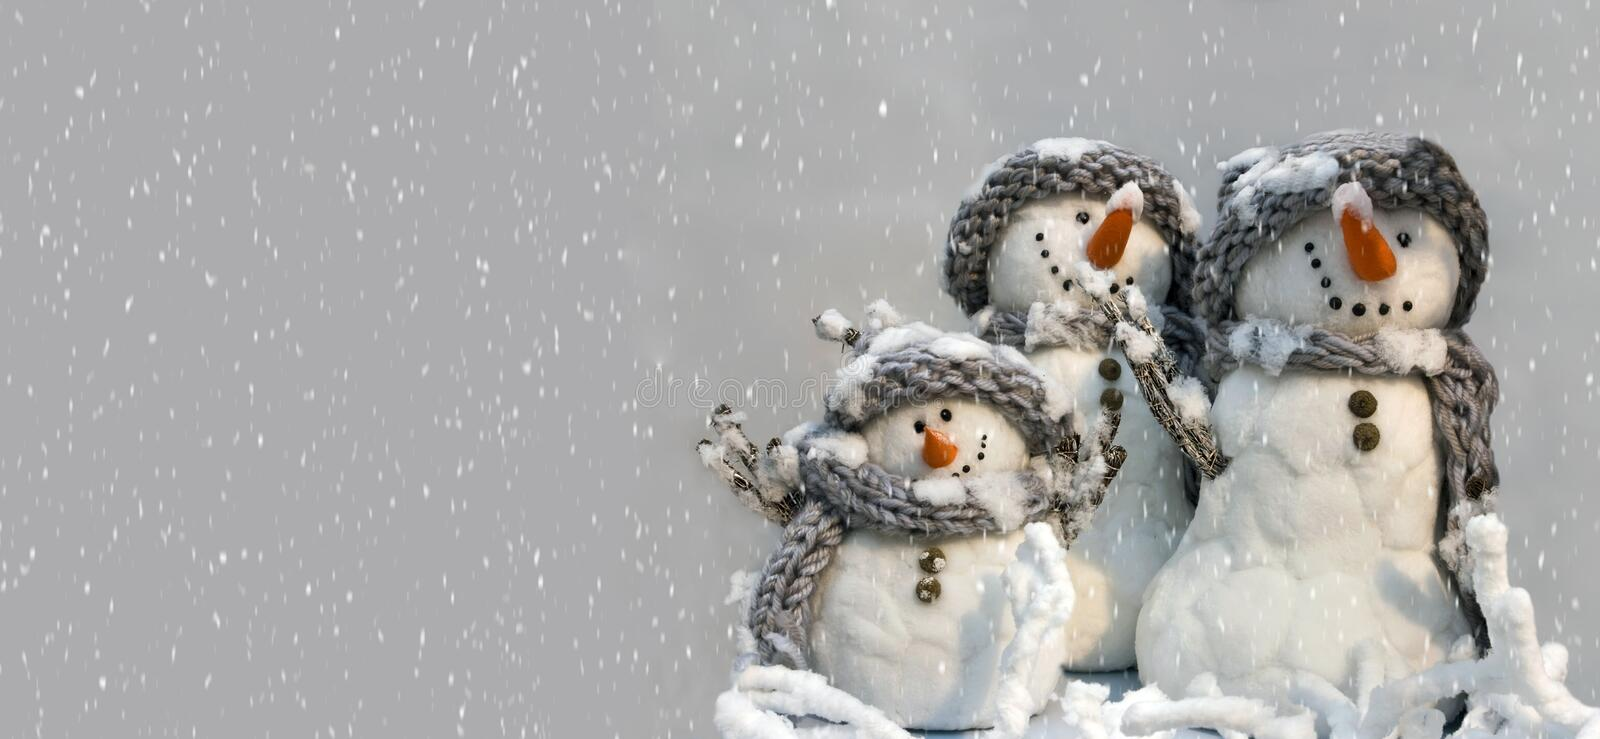 Background for xmas card of group of three snowmen royalty free stock photography